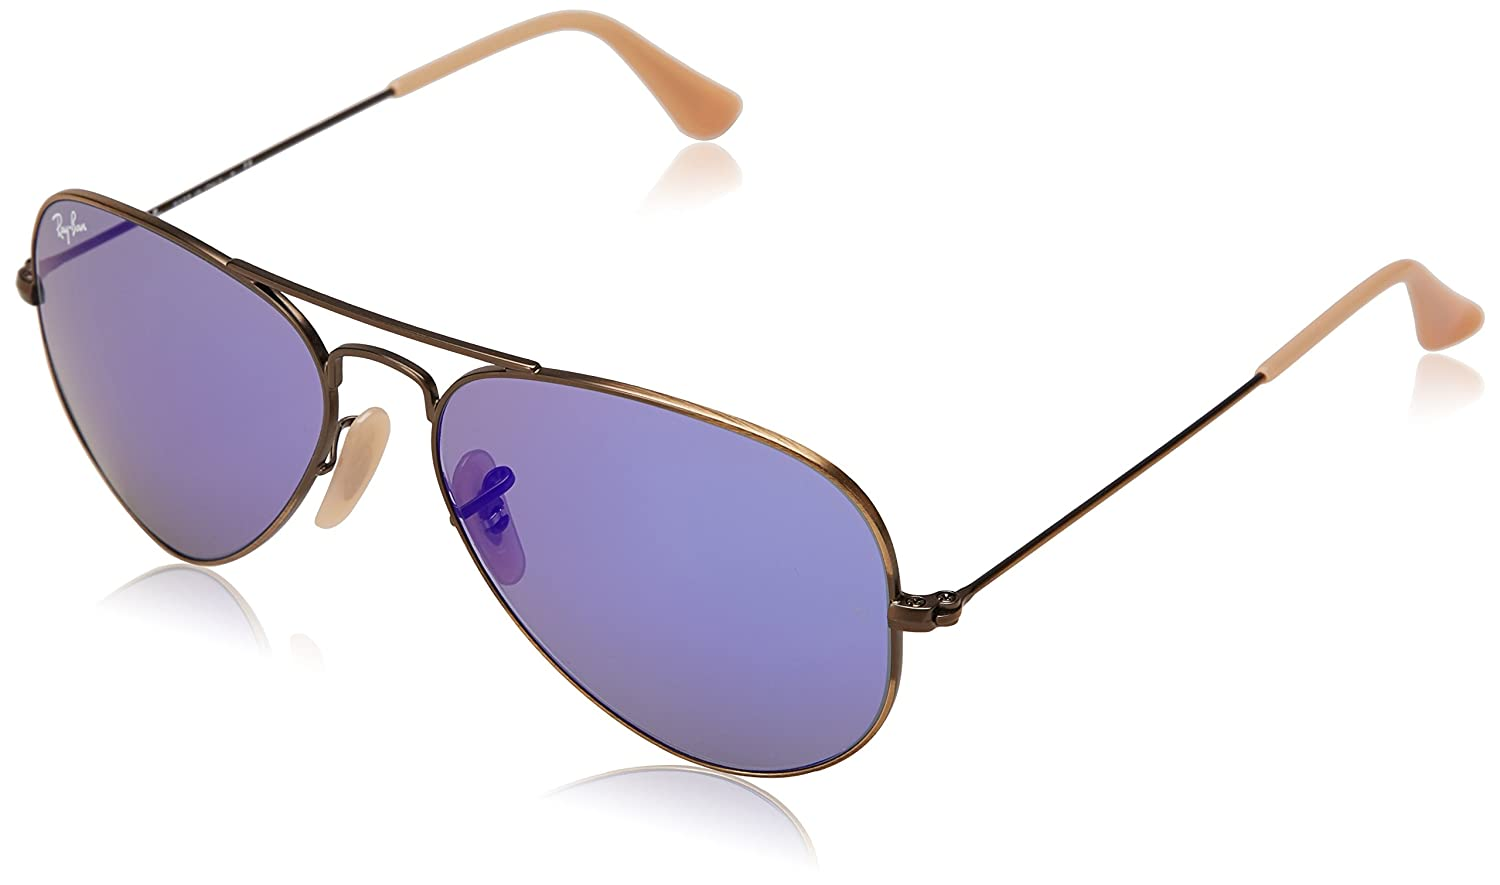 Ray-Ban RB3025 Aviator Sonnenbrille 55mm